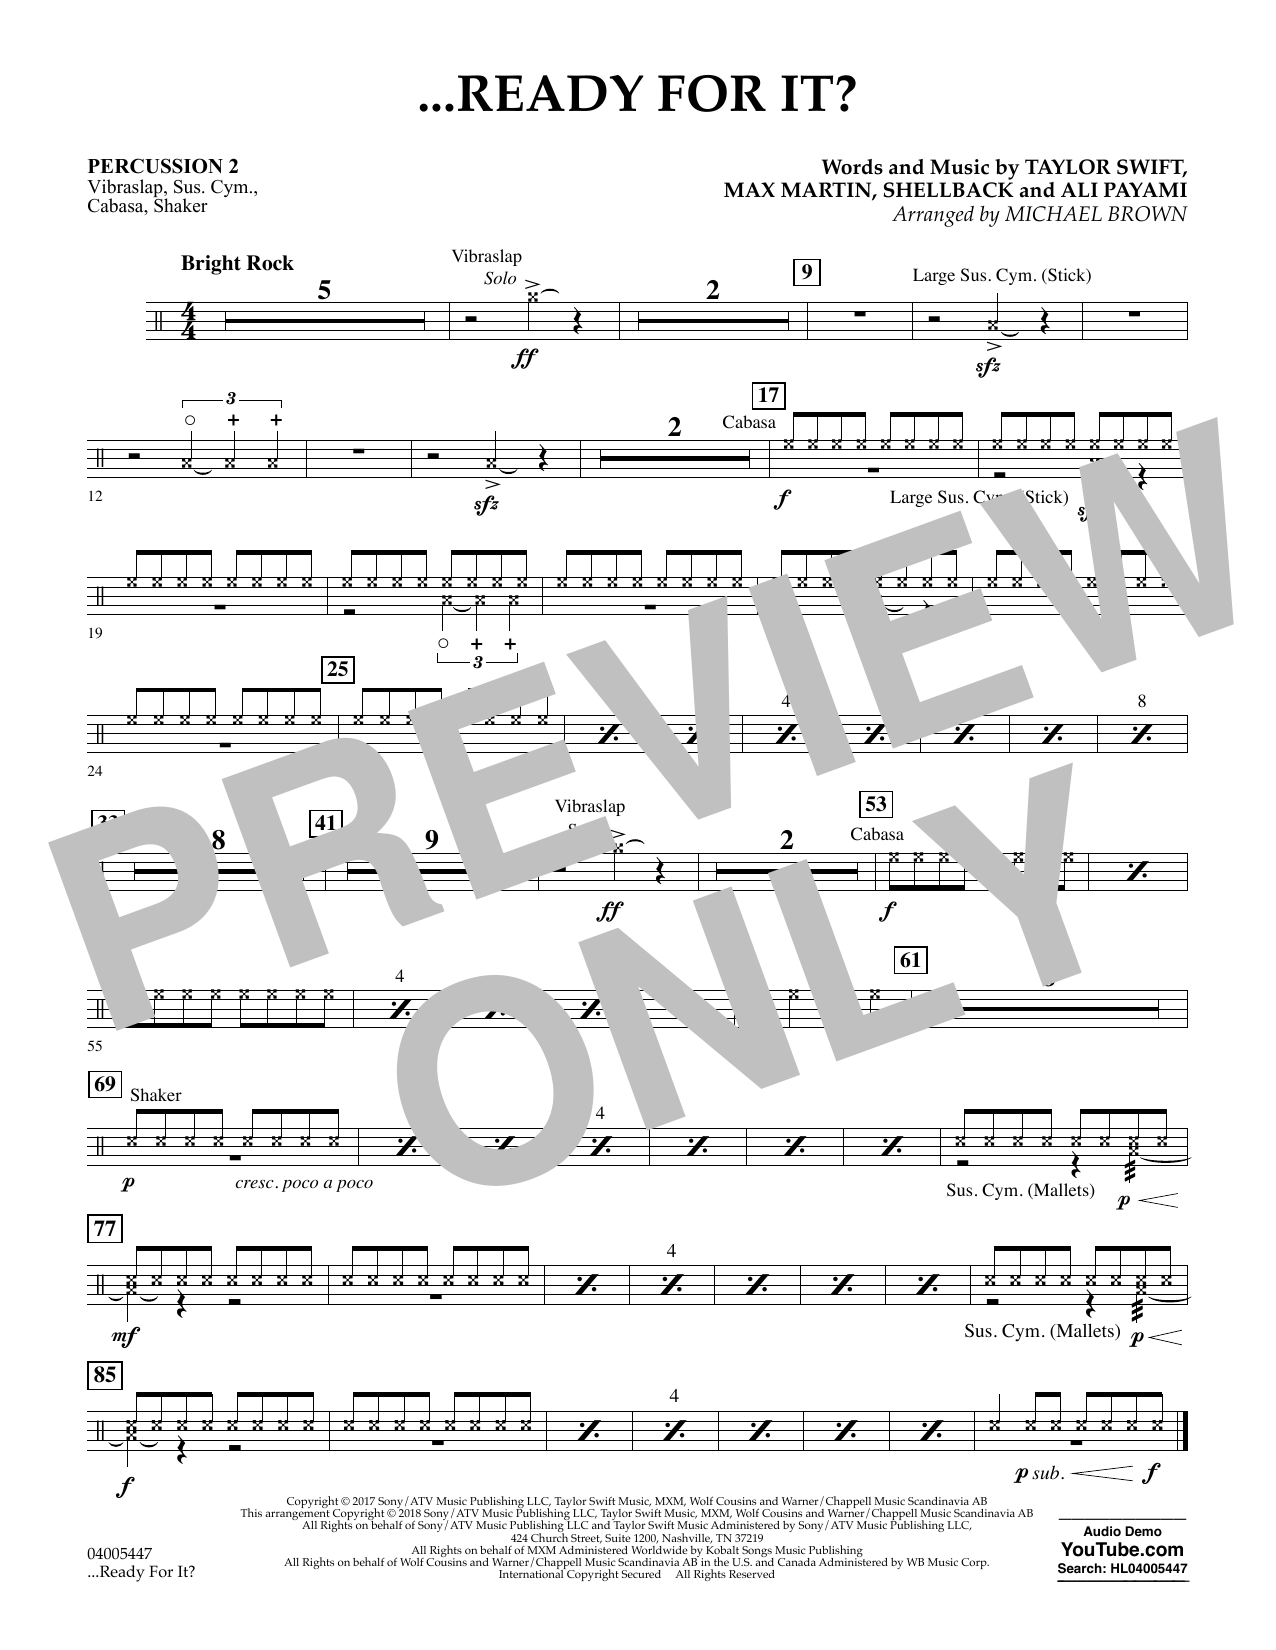 Michael Brown ...Ready for It? - Percussion 2 sheet music notes and chords. Download Printable PDF.